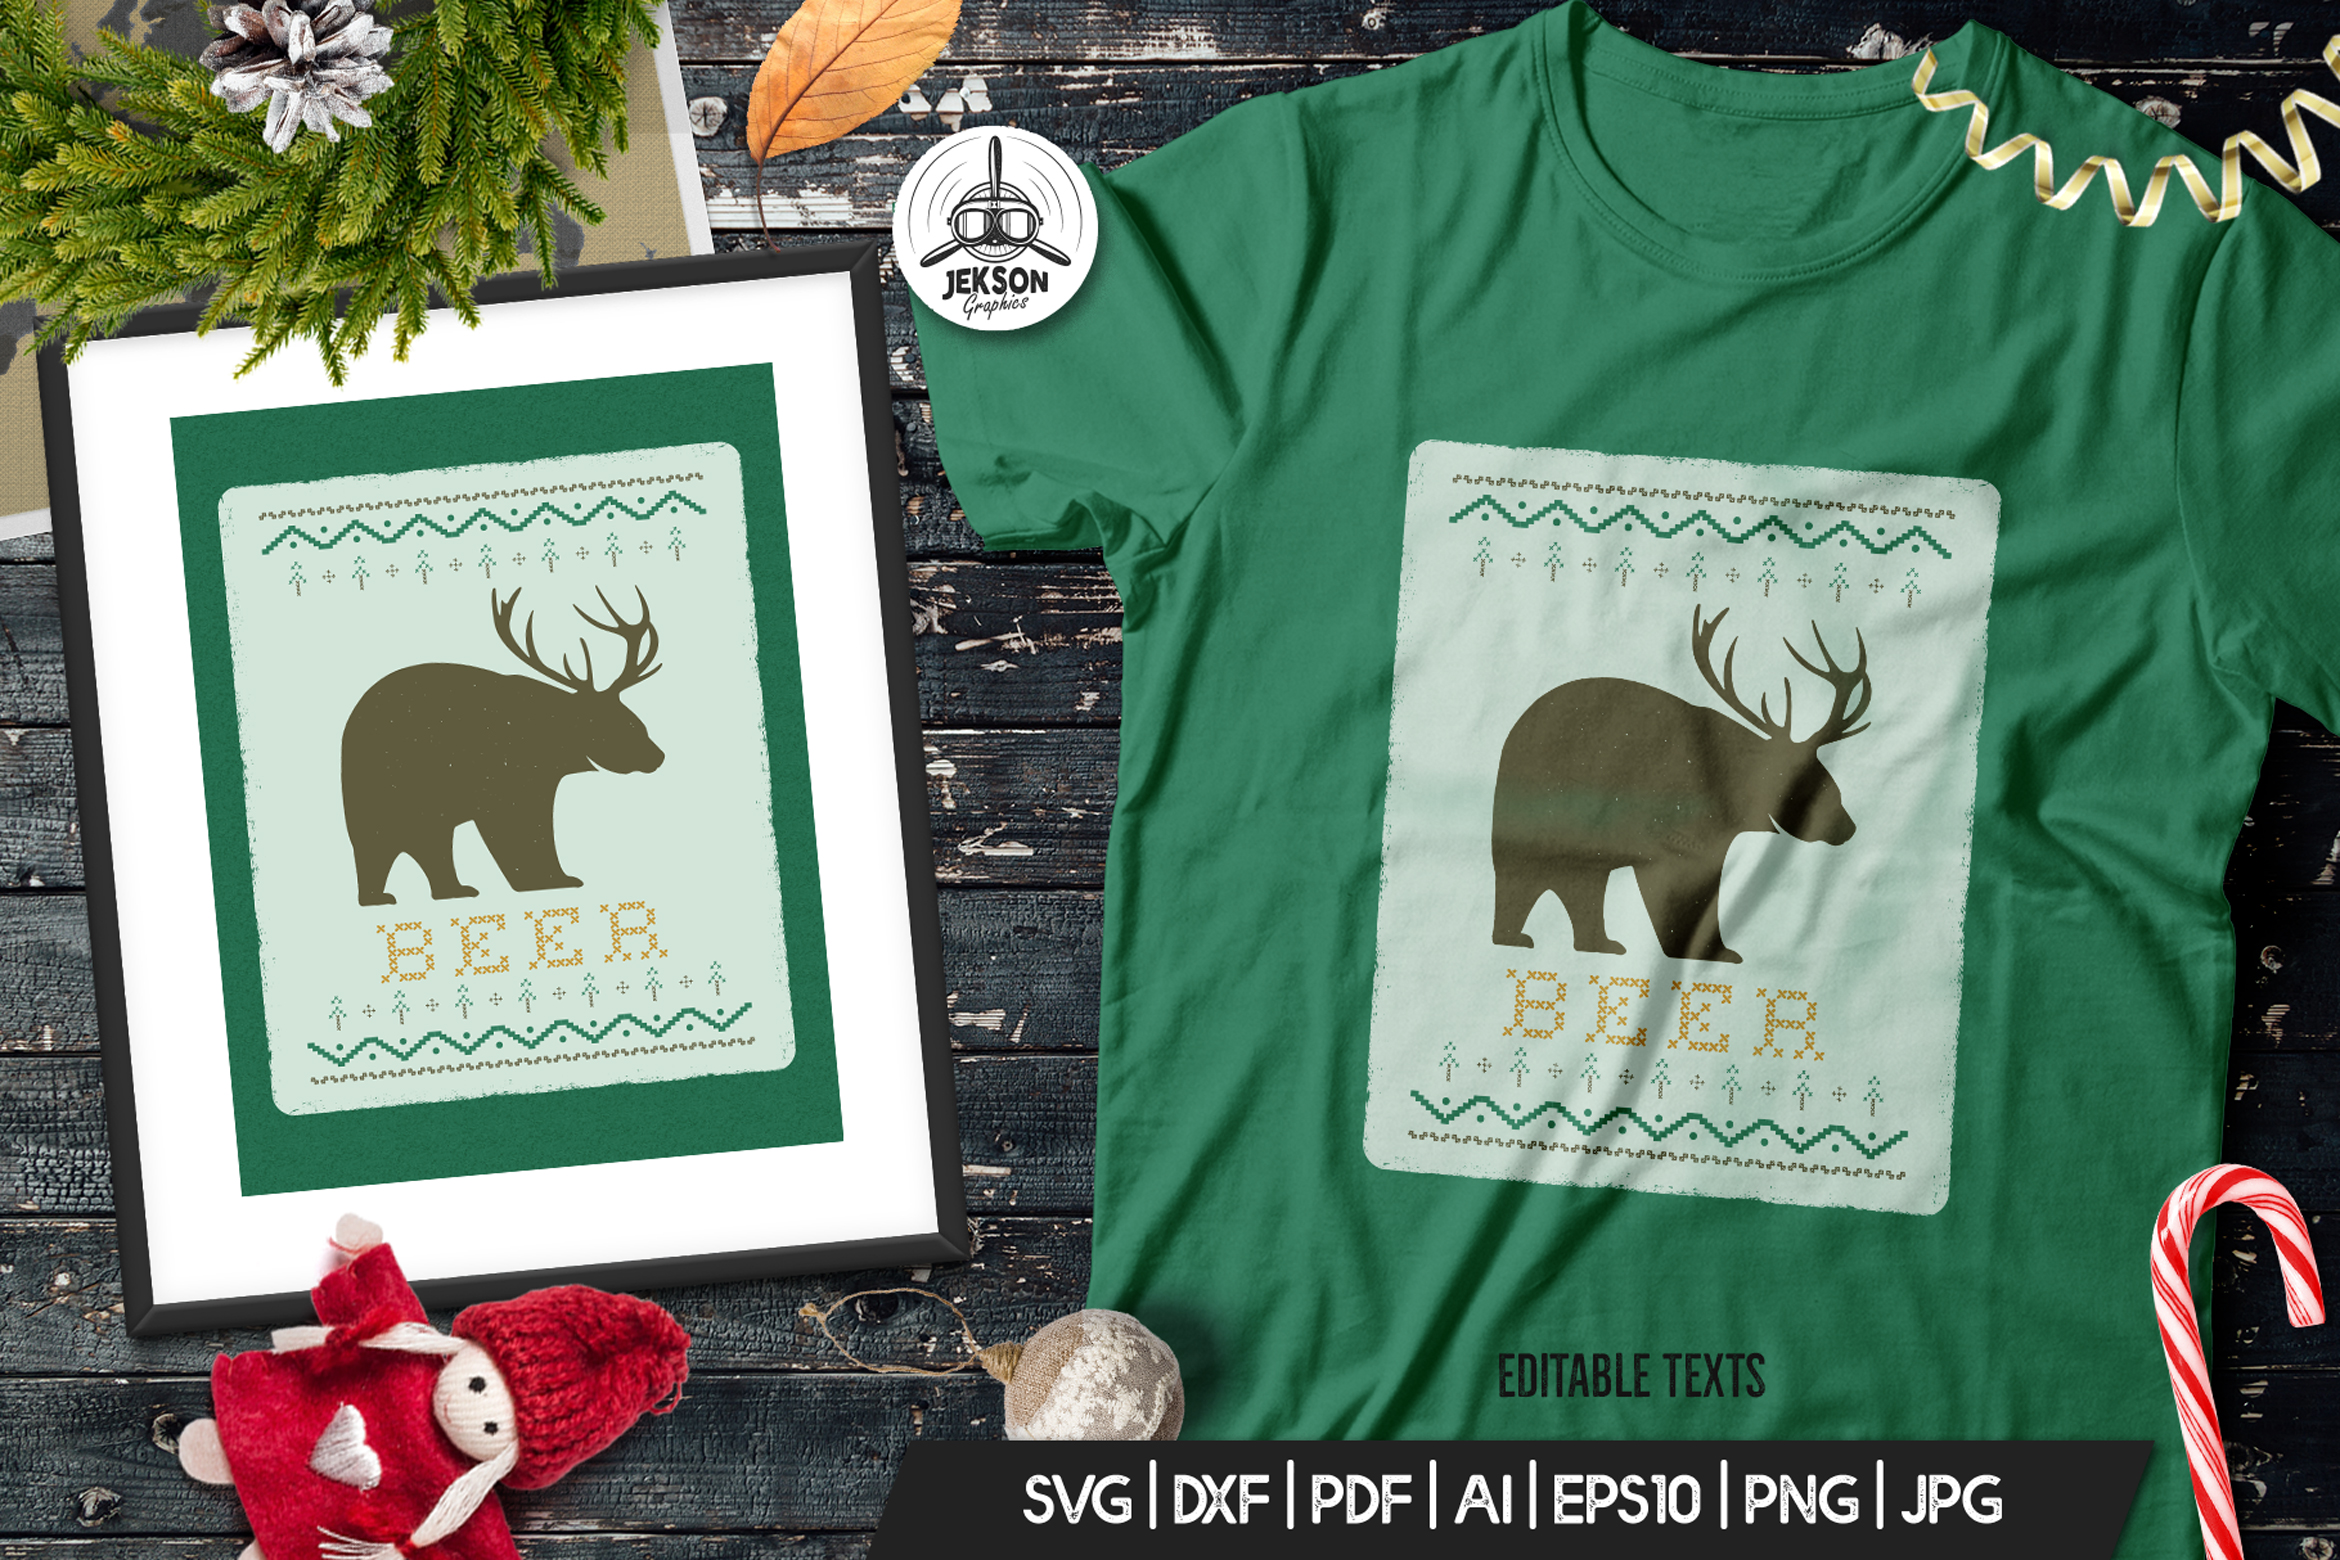 Funny Christmas Print T-Shirt Sweater. Beer Design SVG File example image 1